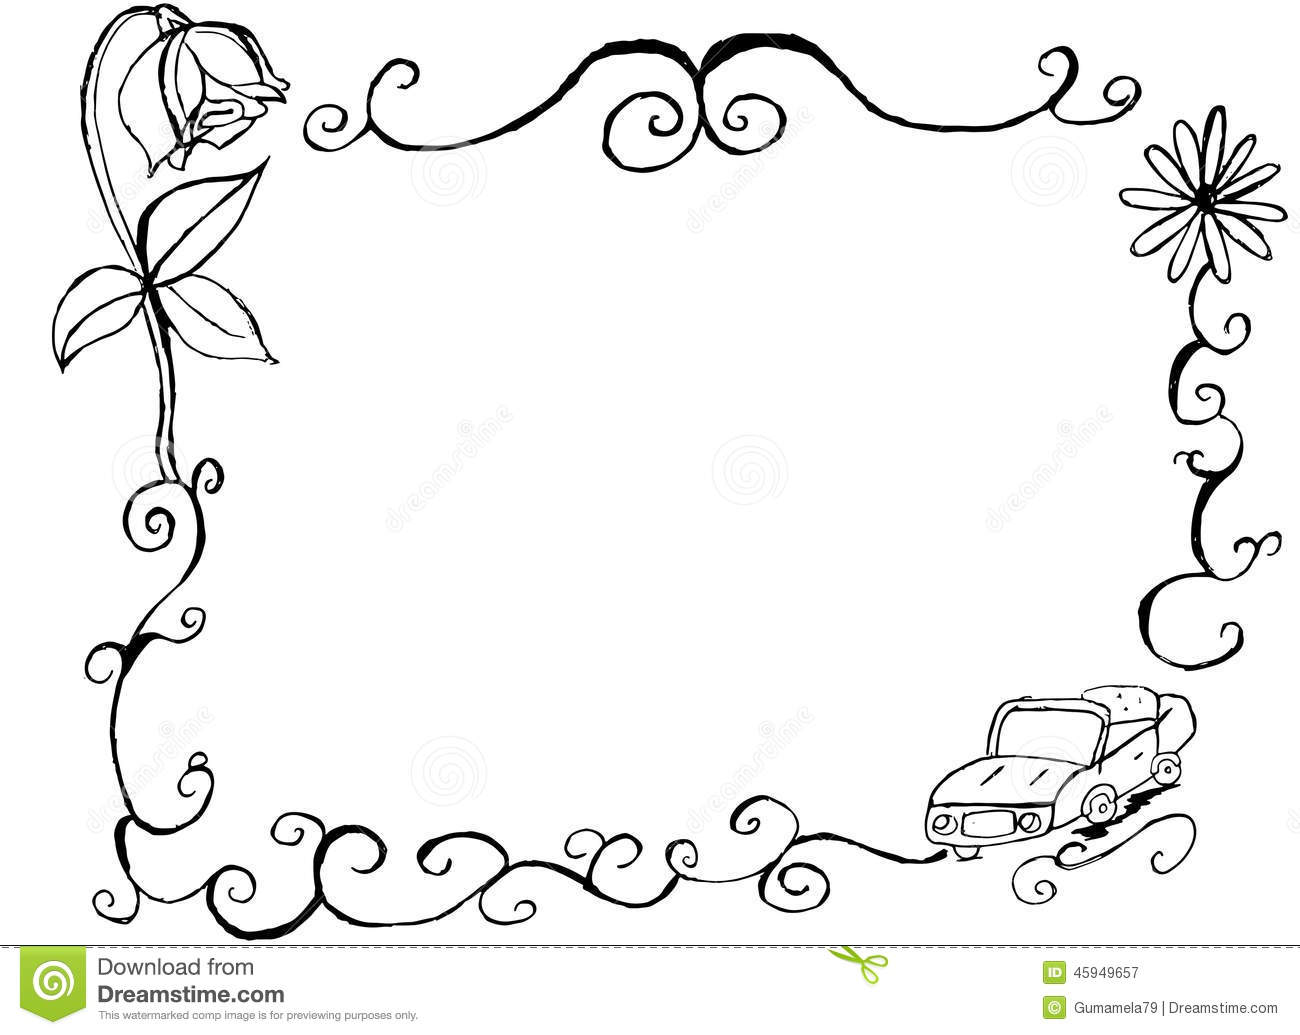 Dibujos De Marcos De Fotos Para Colorear: Decorative Hand Drawn Vintage Car And Floral Border And